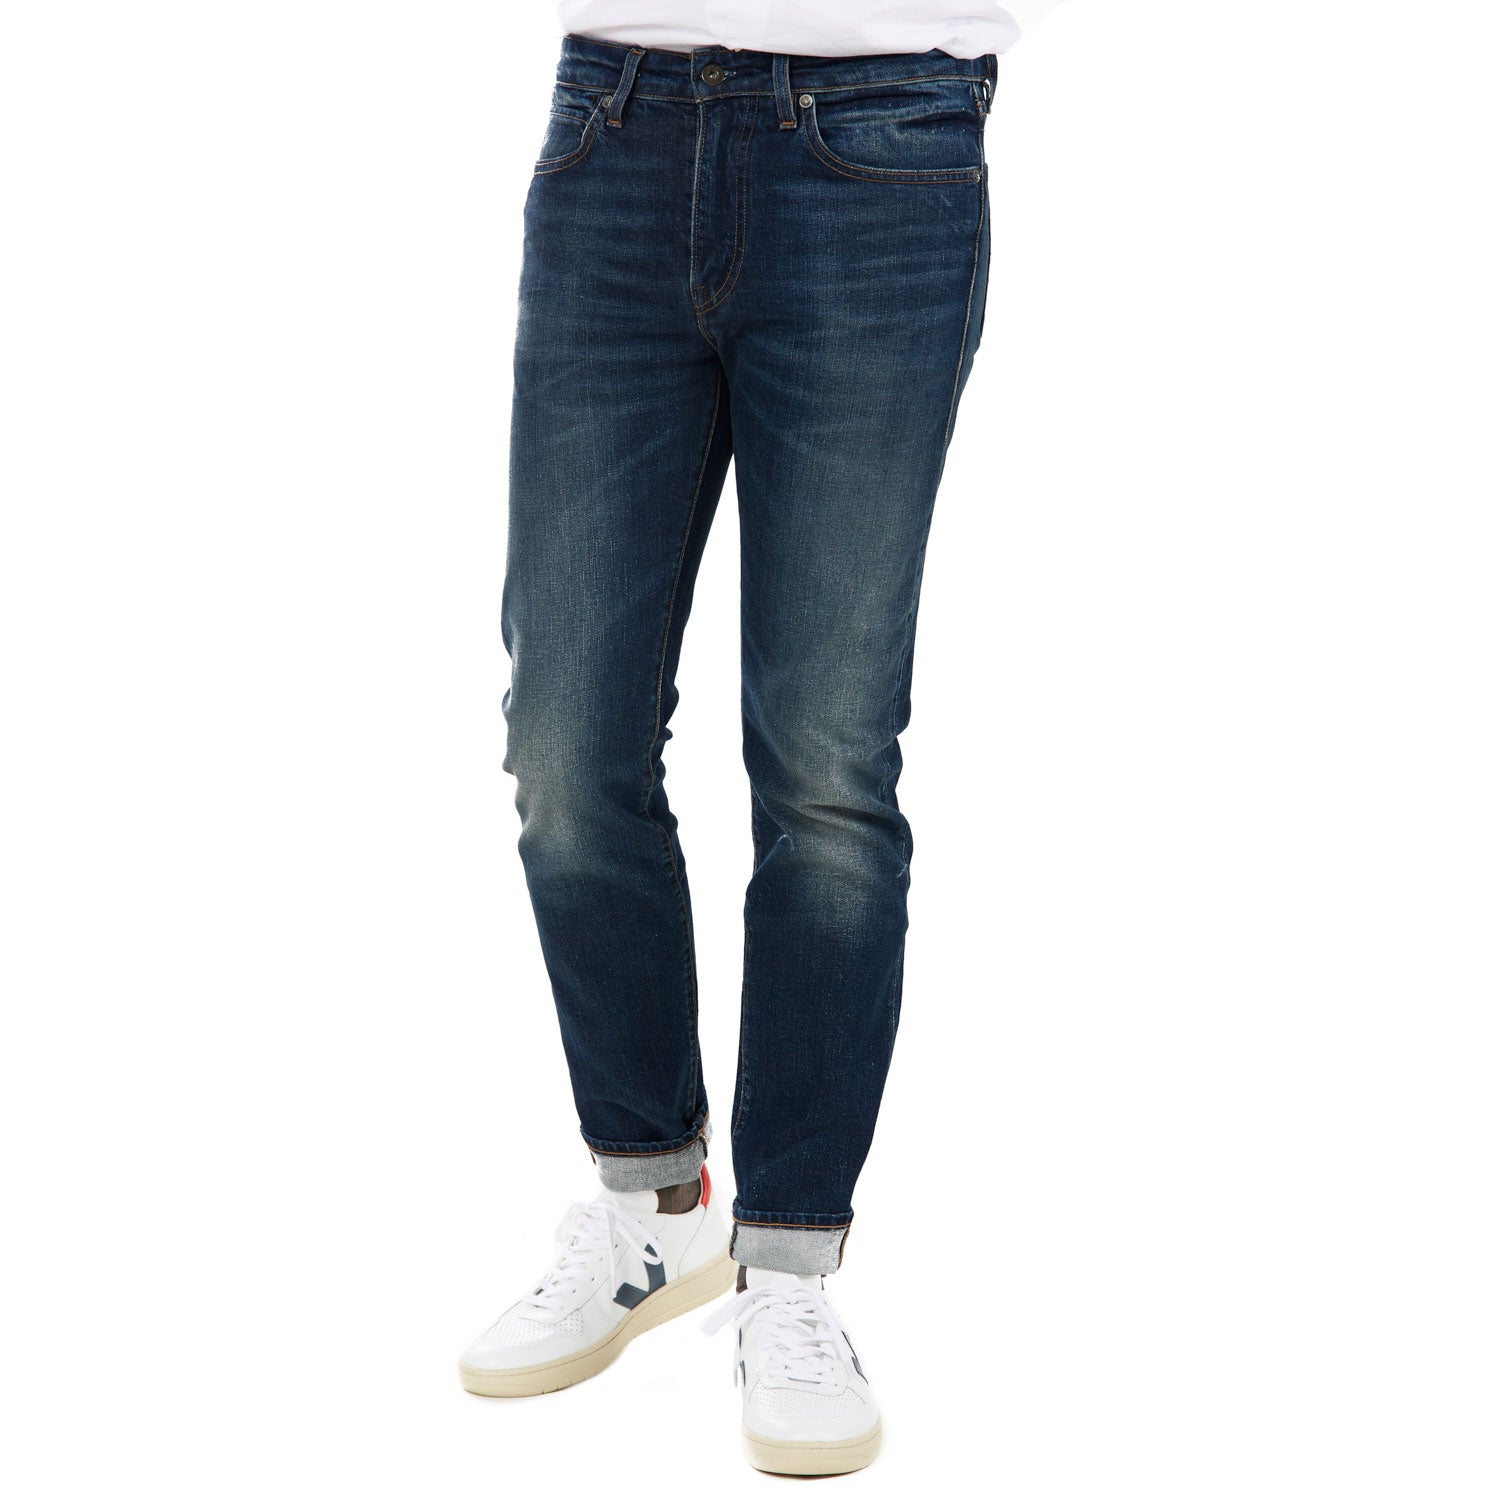 Levi's Made & Crafte Needle Narrow Jeans